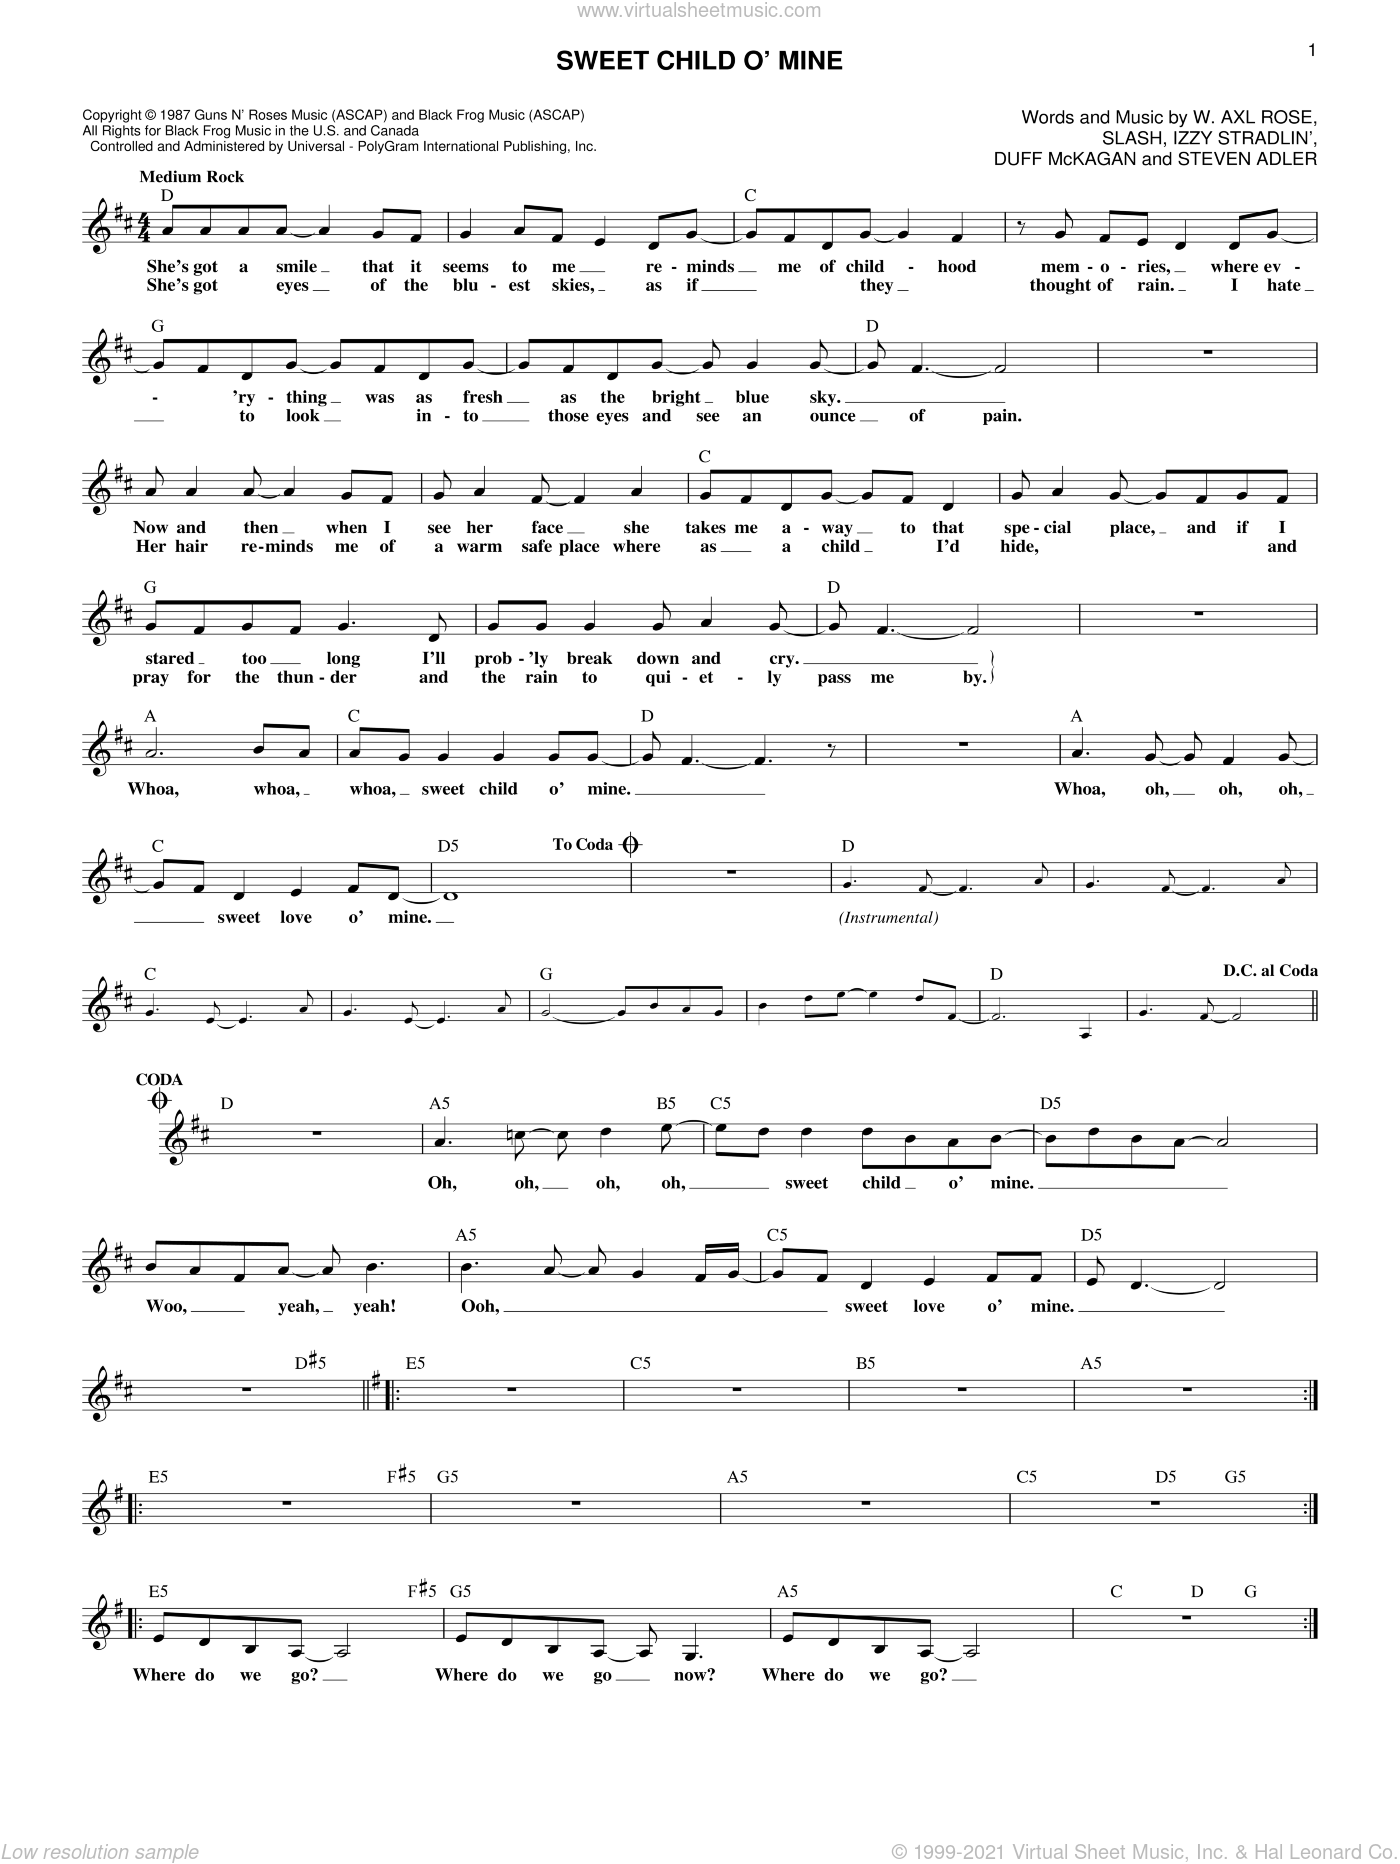 Sweet Child O' Mine sheet music for voice and other instruments (fake book) by Guns N' Roses, Axl Rose, Duff McKagan, Slash and Steven Adler, intermediate. Score Image Preview.